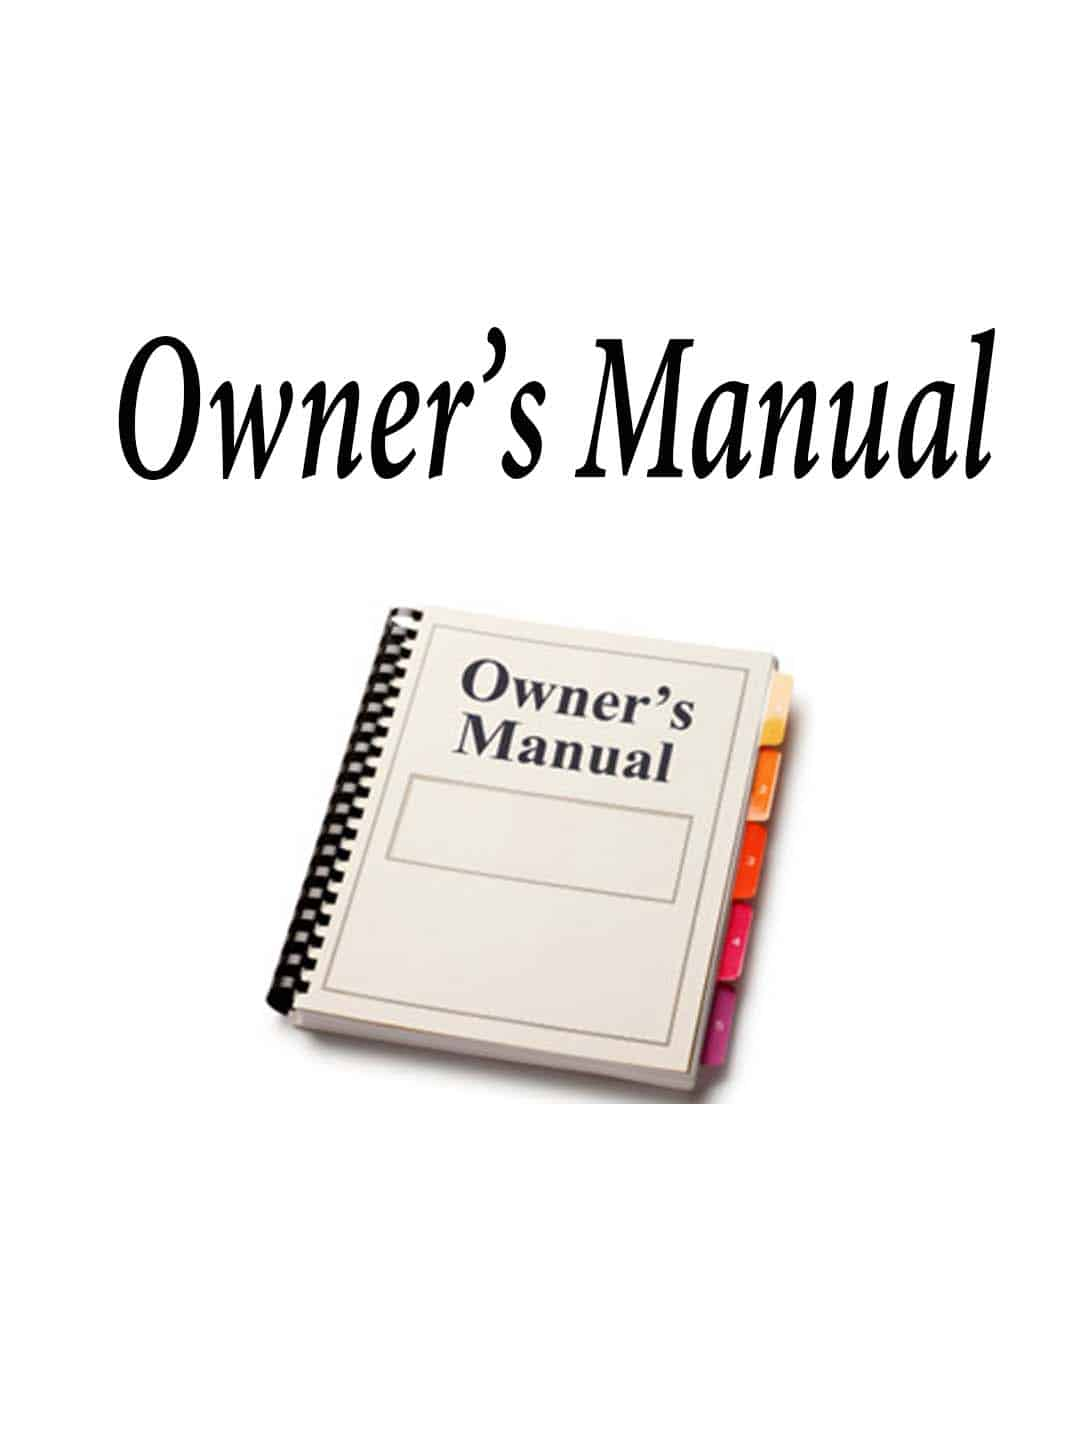 OMHCB30 - Owners Manual For The Hcb30 Radio